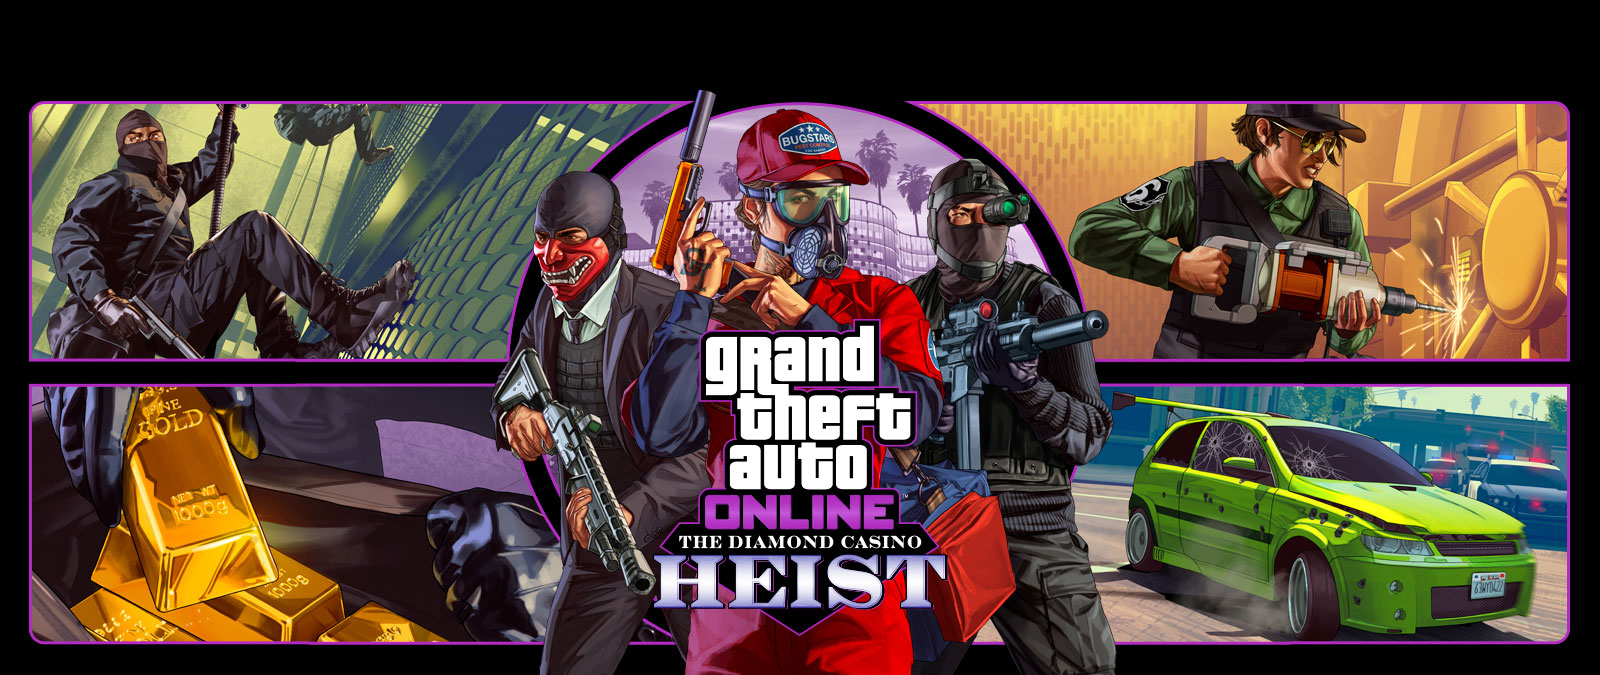 Grand Theft Auto Online, Golpe al casino The Diamond